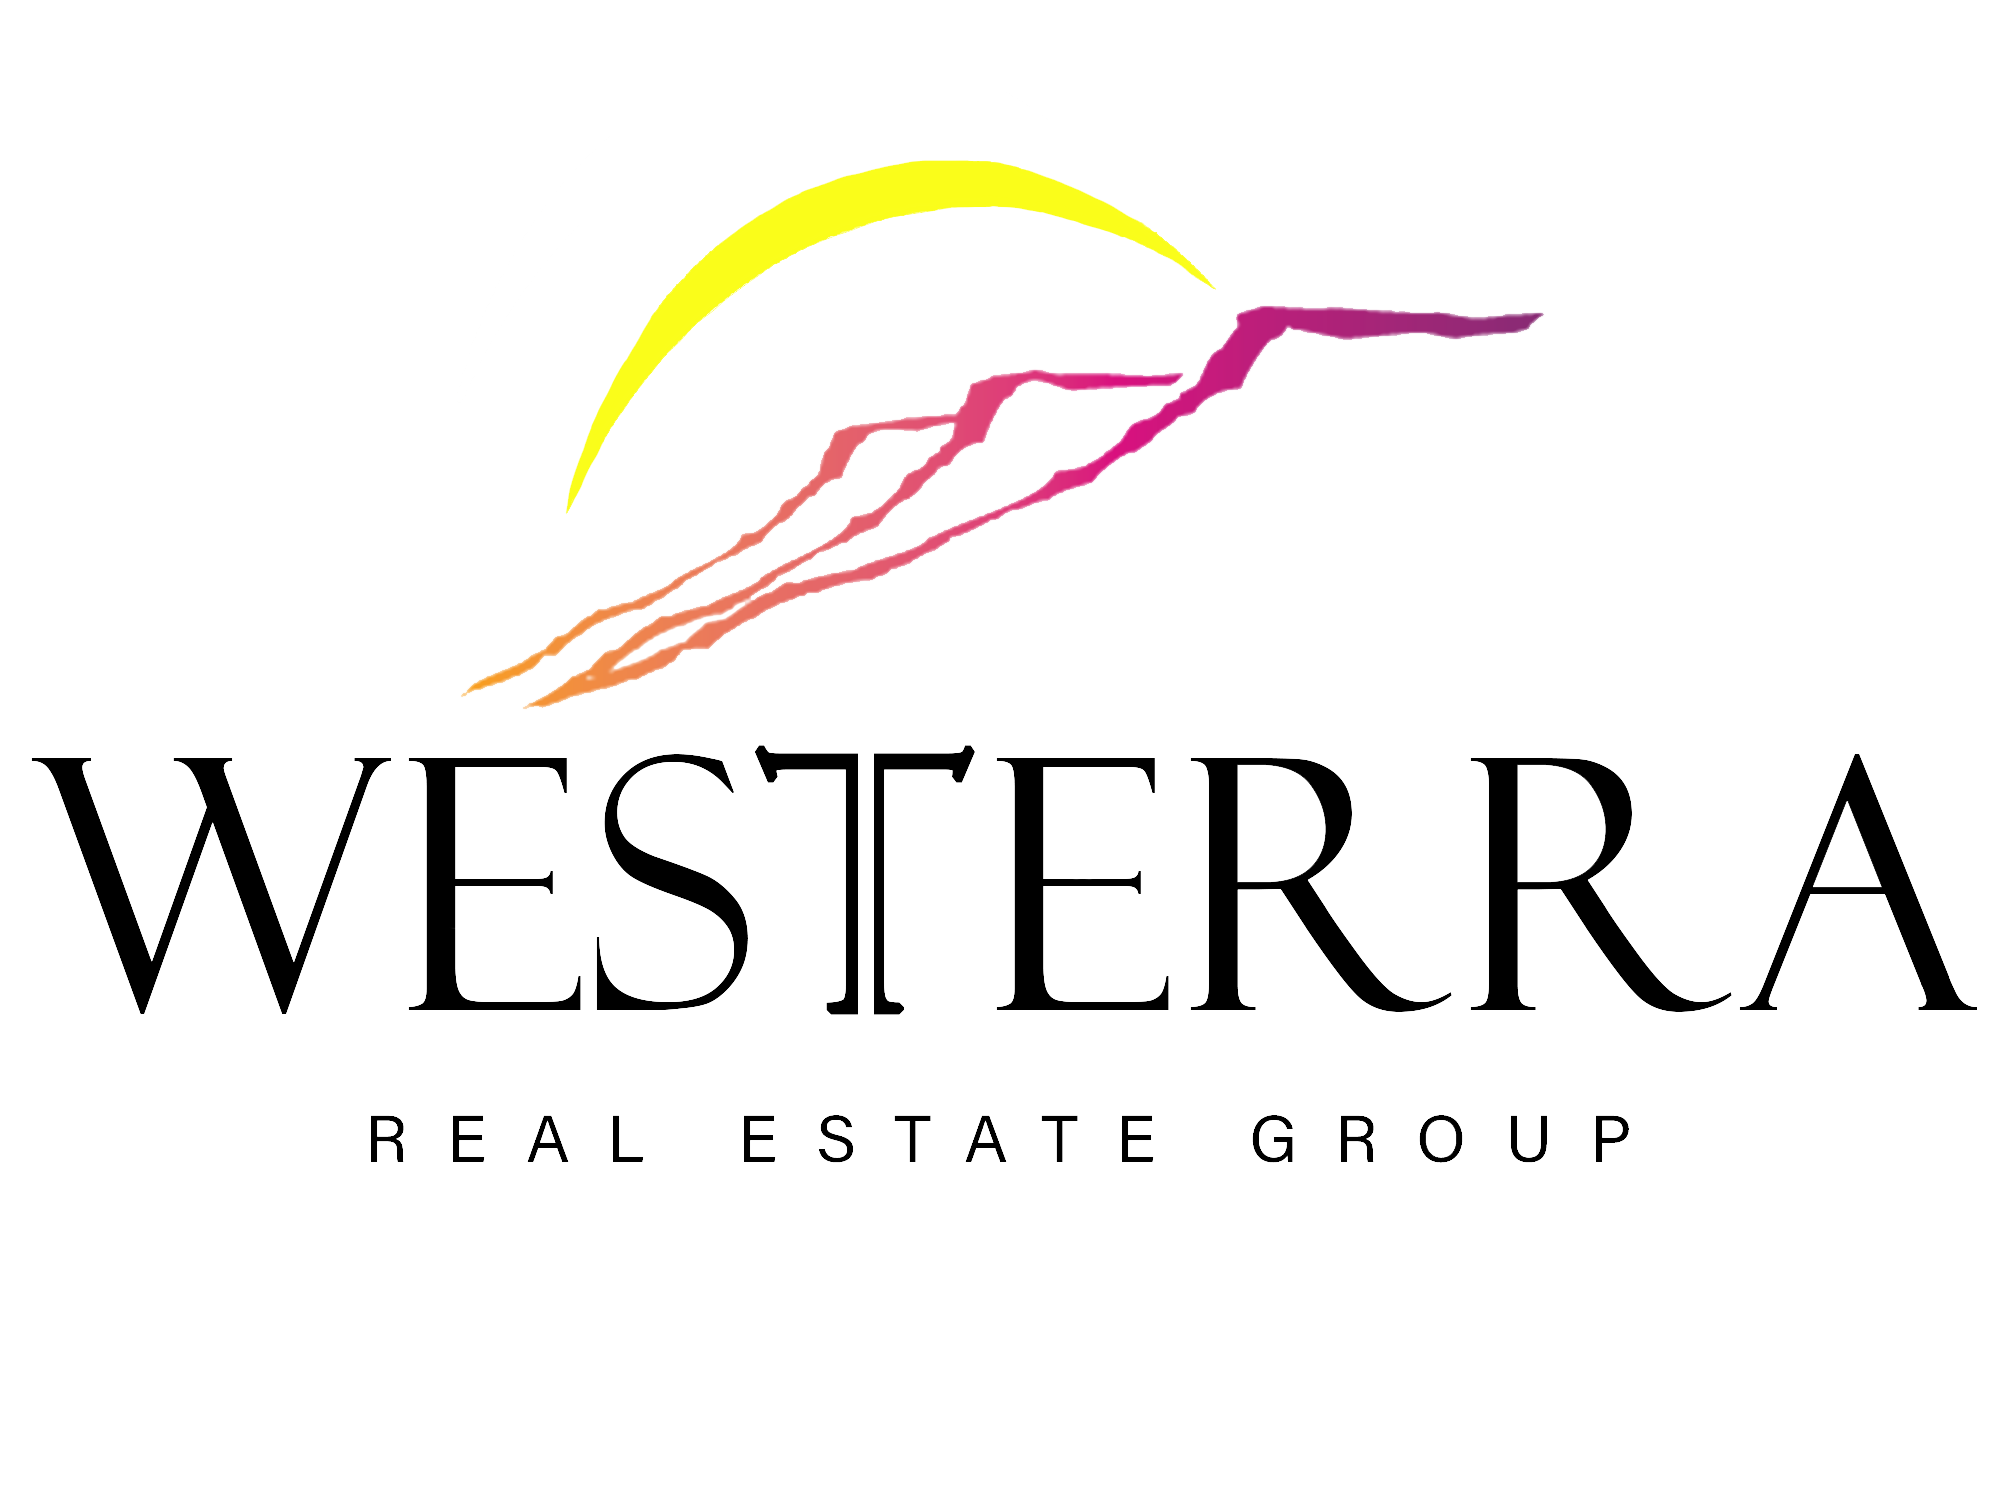 Westerra Real Estate Group